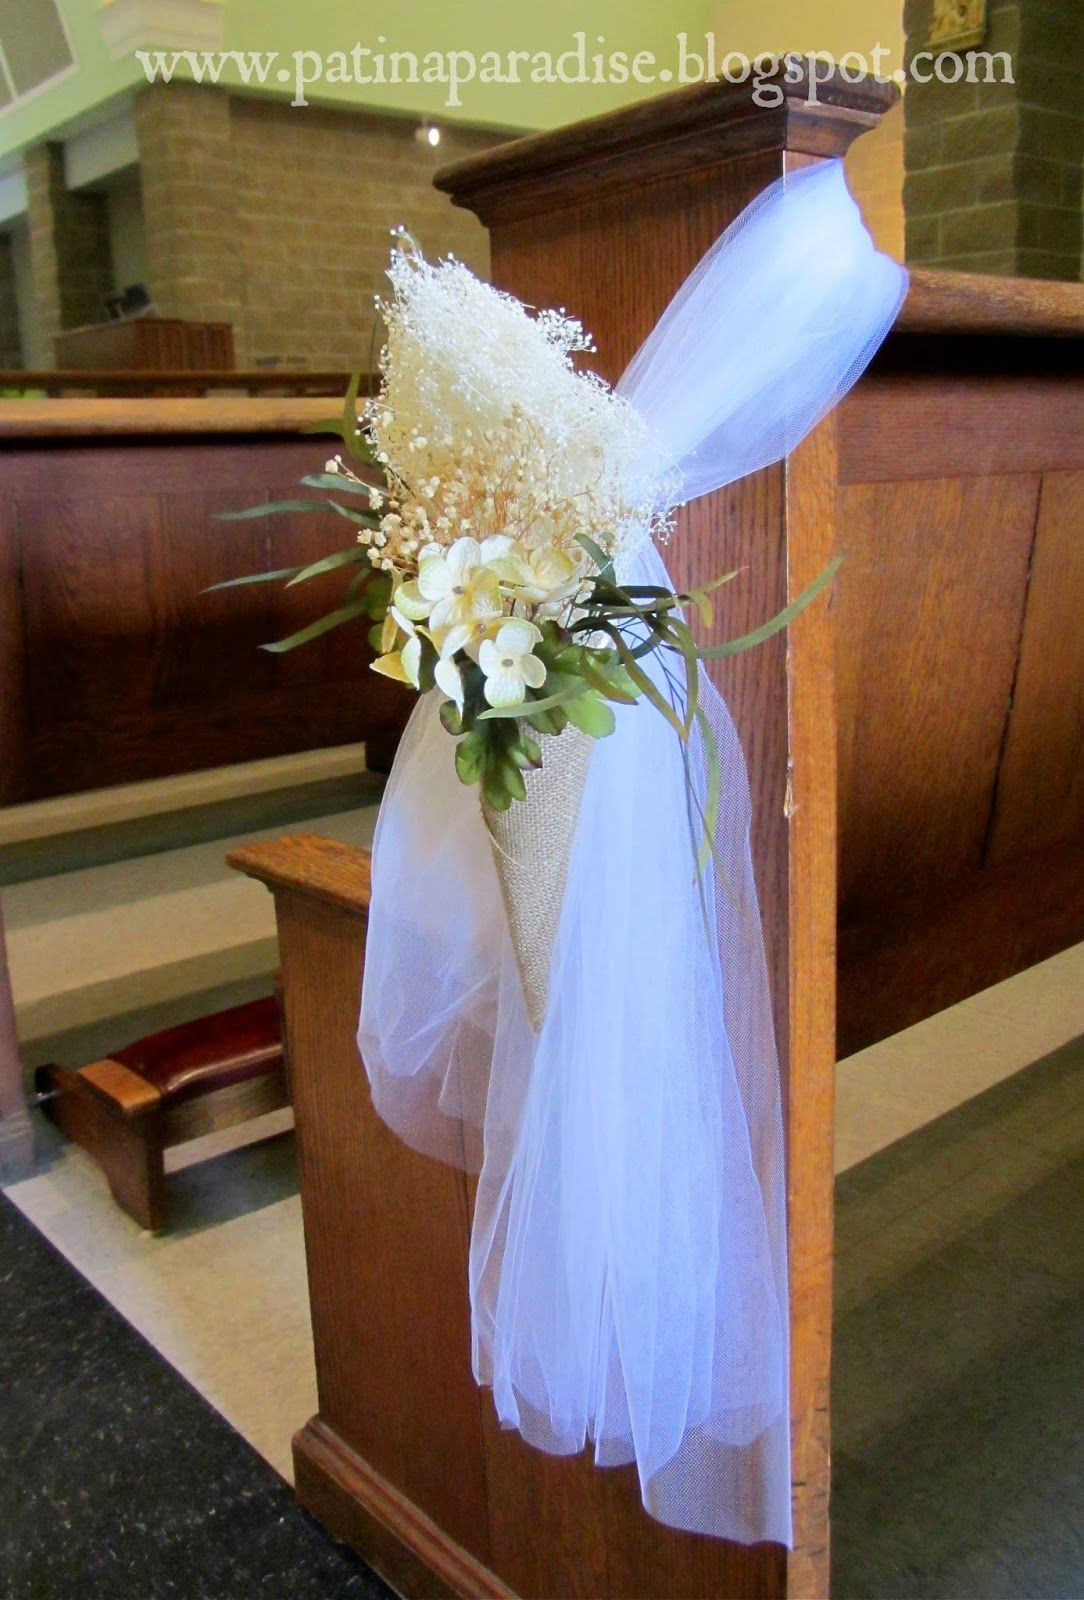 church+pew+wedding+decorations | ... pew at the entrance ...